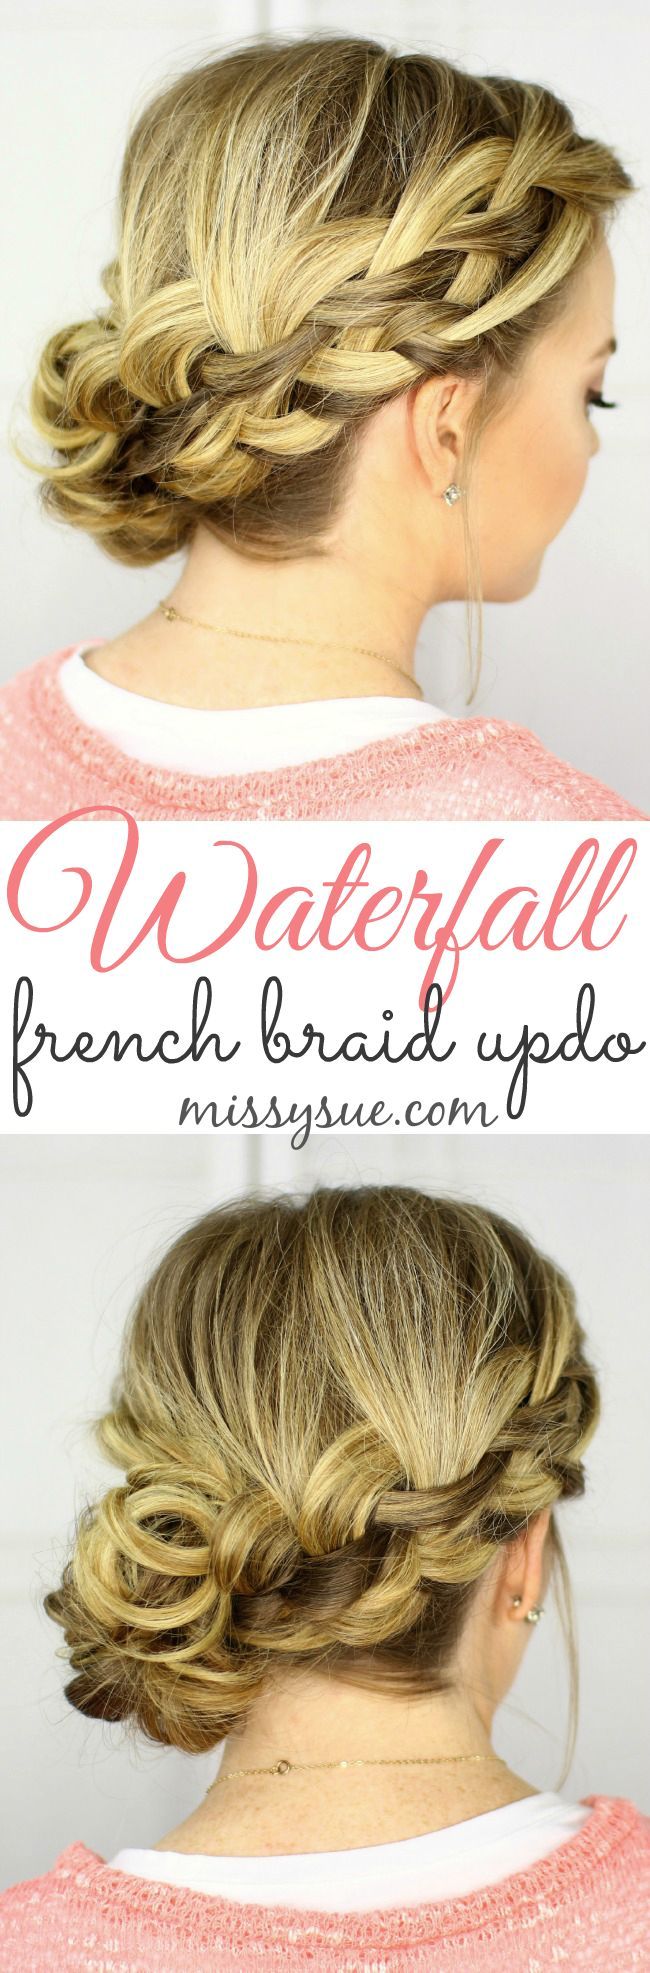 French braiding tips - Waterfall French Braid Updo